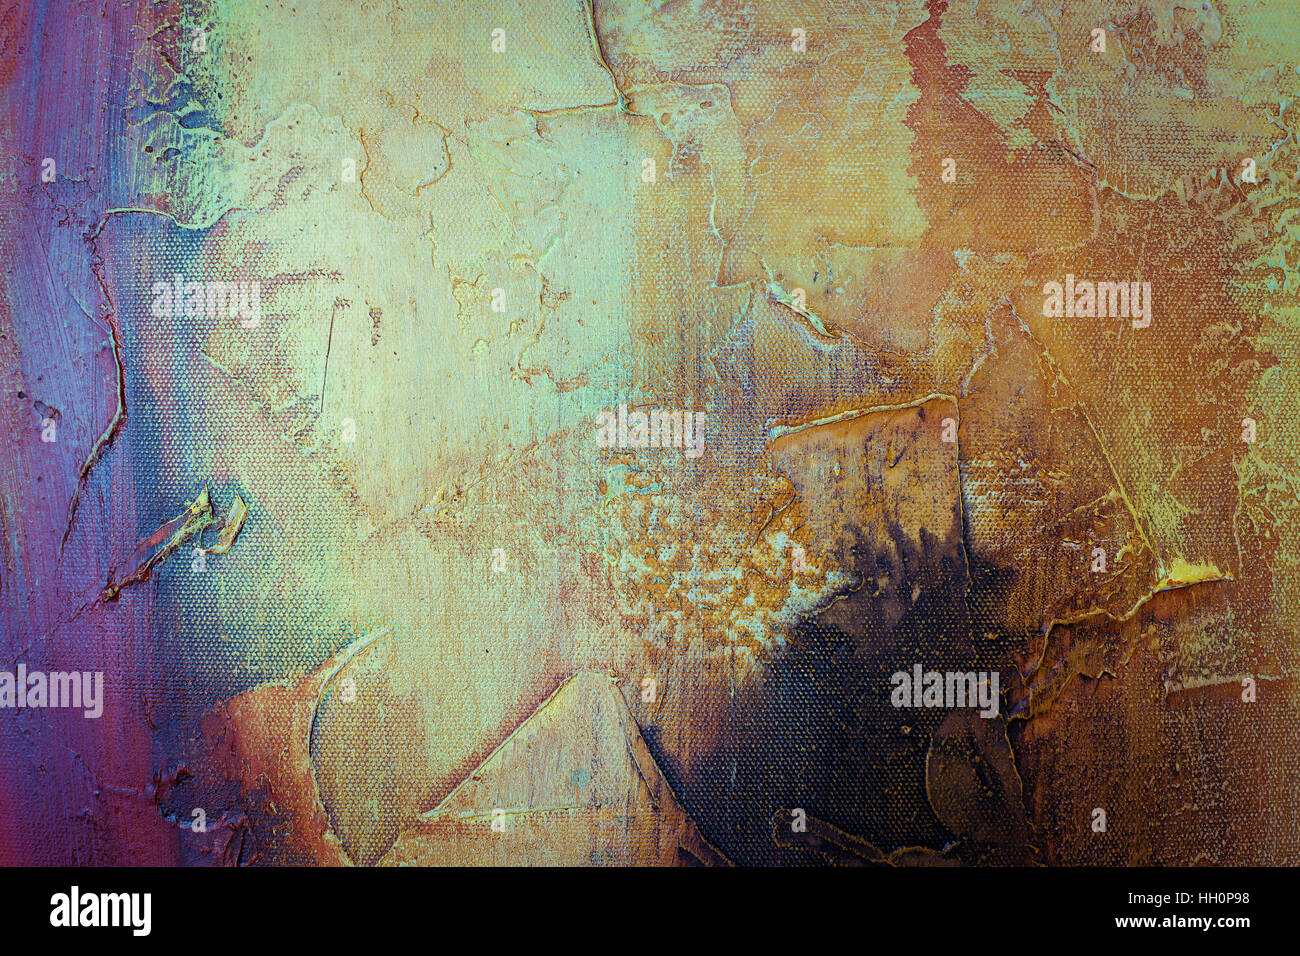 Vintage background. Vintage old painted wall with dark yellow urban graffiti. - Stock Image